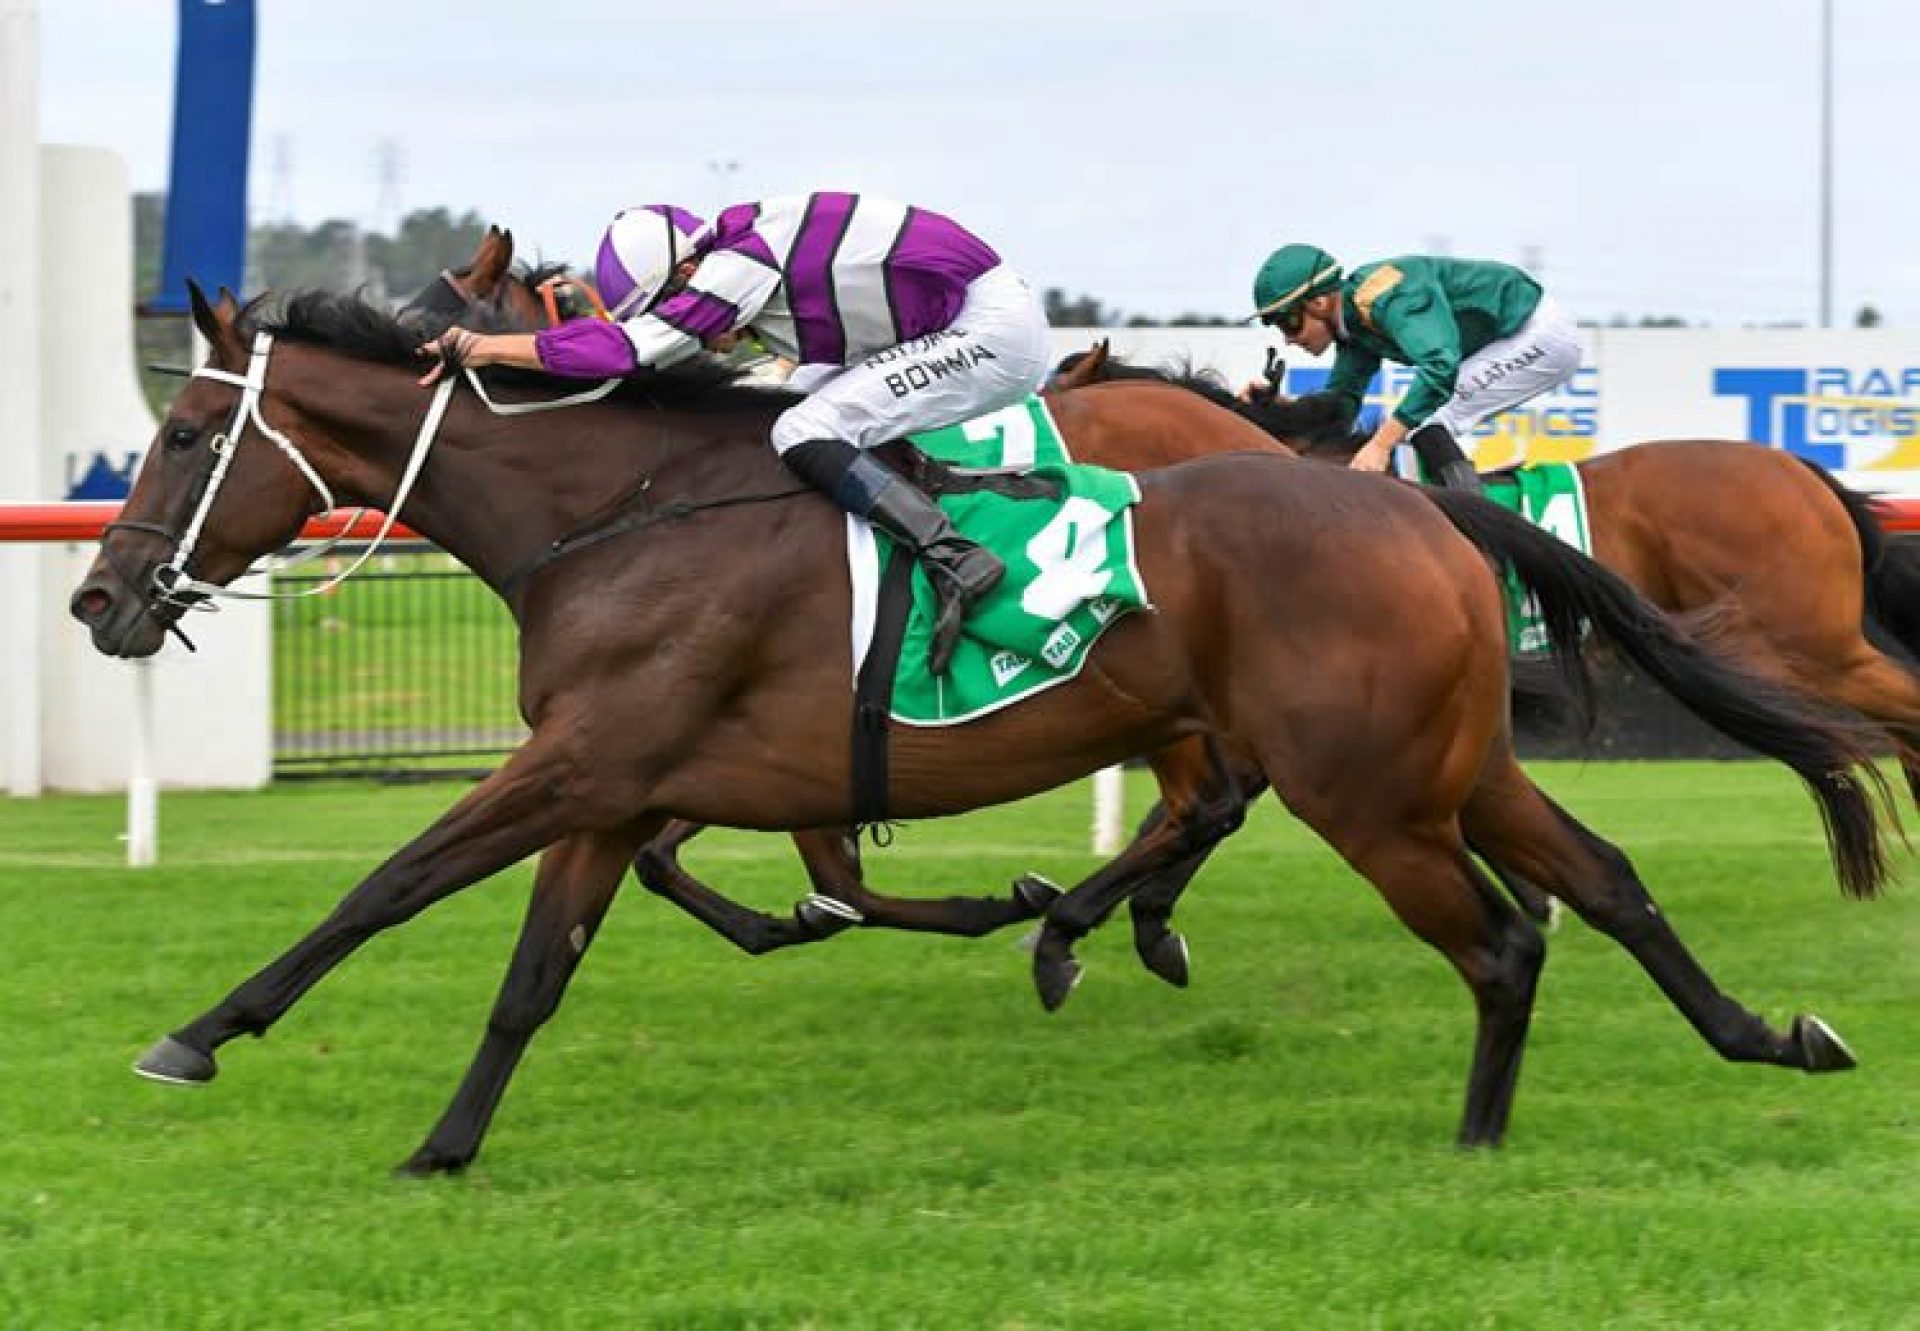 Canadian Spice (Vancouver) winning at Kembla